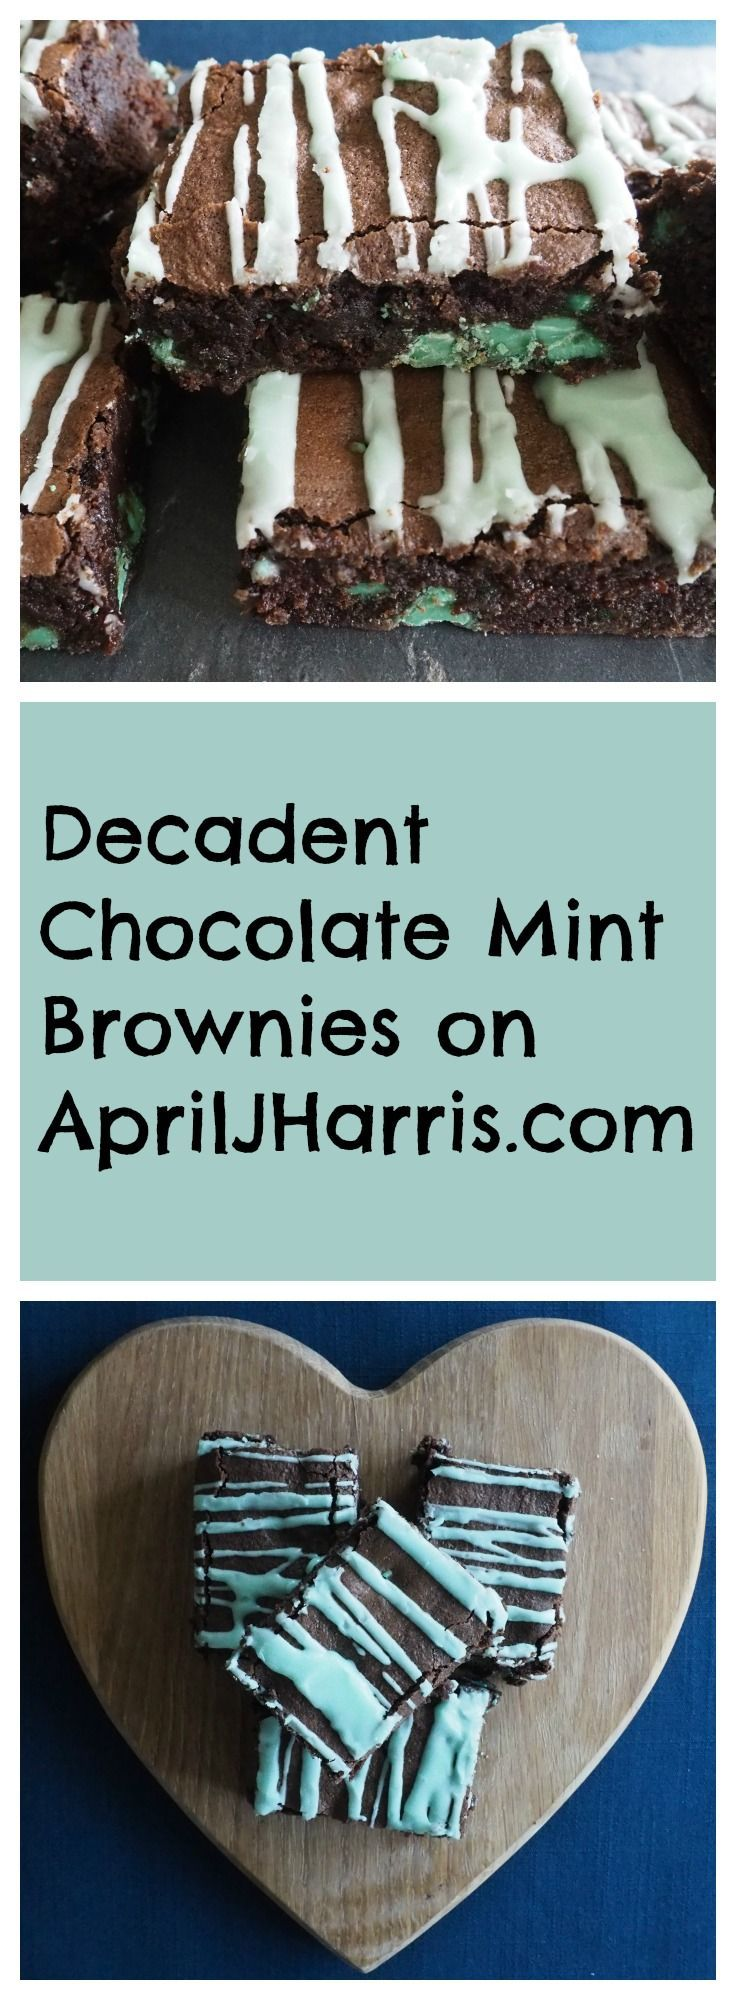 Deliciously Easy Chocolate Mint Brownies on AprilJHarris.com